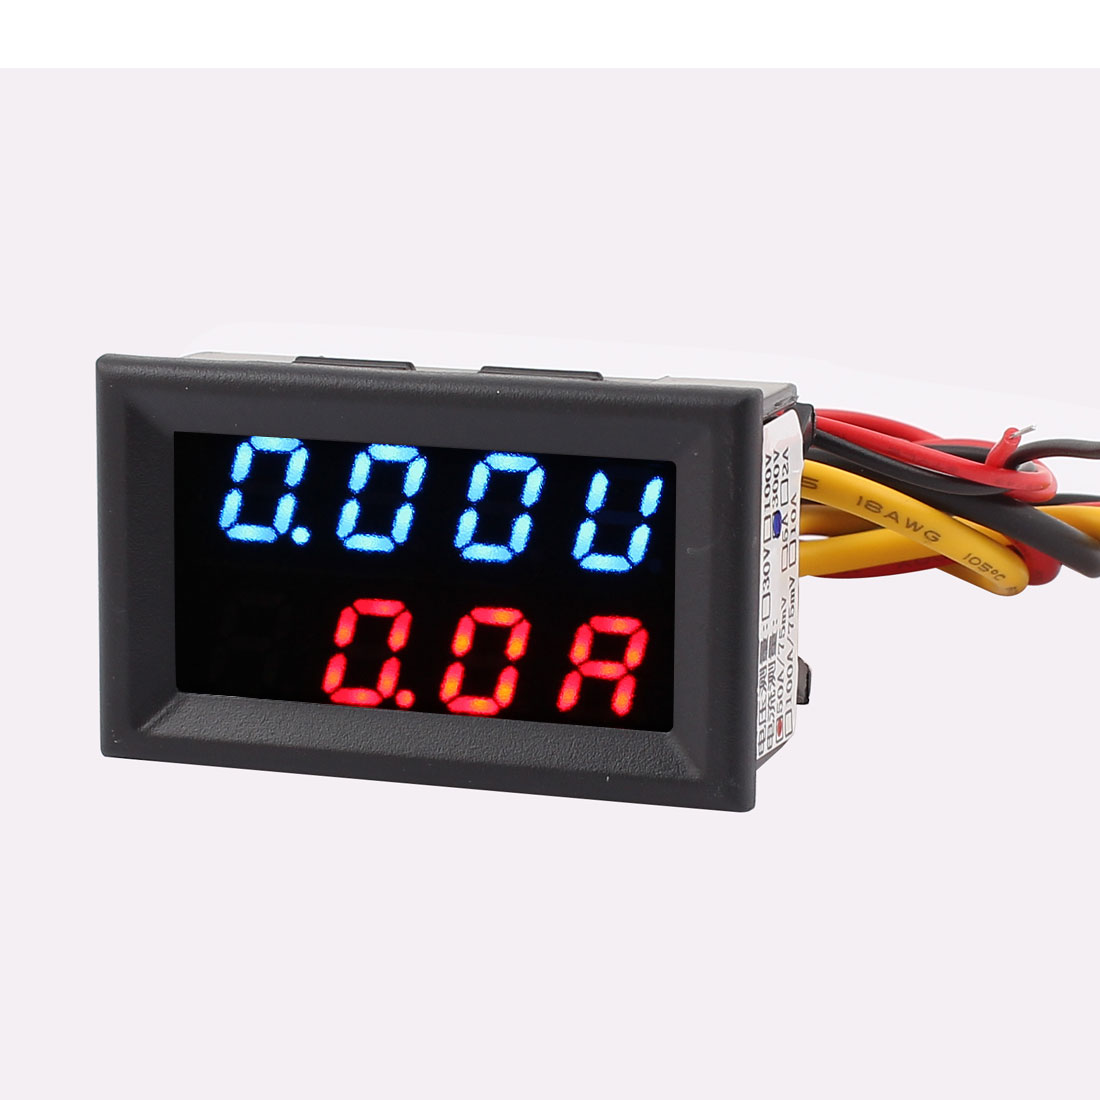 DC 0-300V 0-50A Blue Red LED Dual Digital Panel Voltmeter Ammeter Meter Gauge